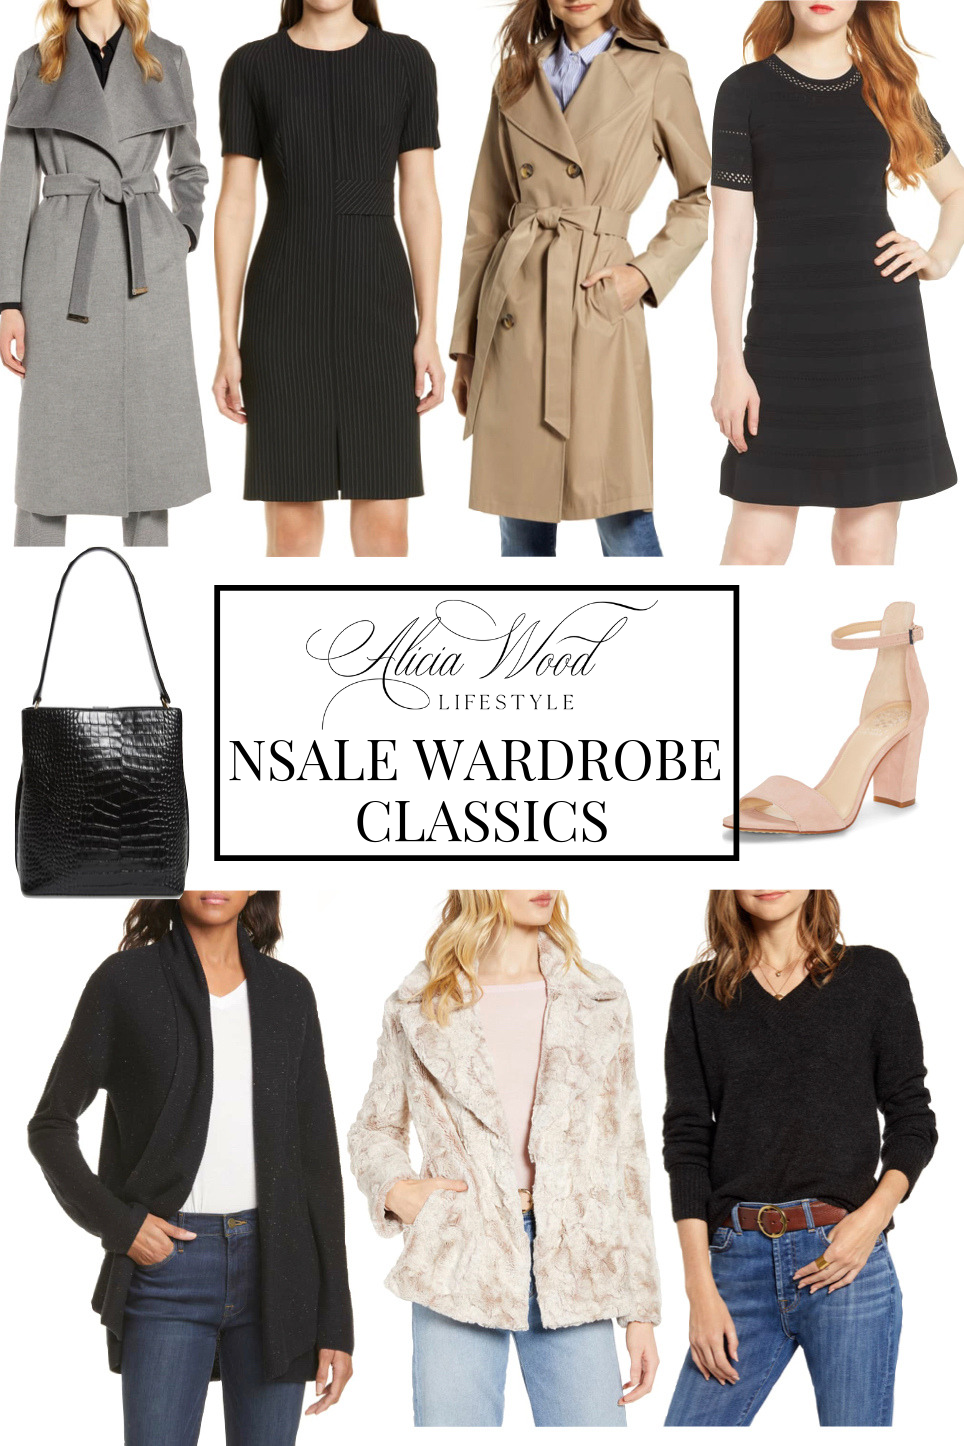 The Best Wardrobe Classics From The #NSale